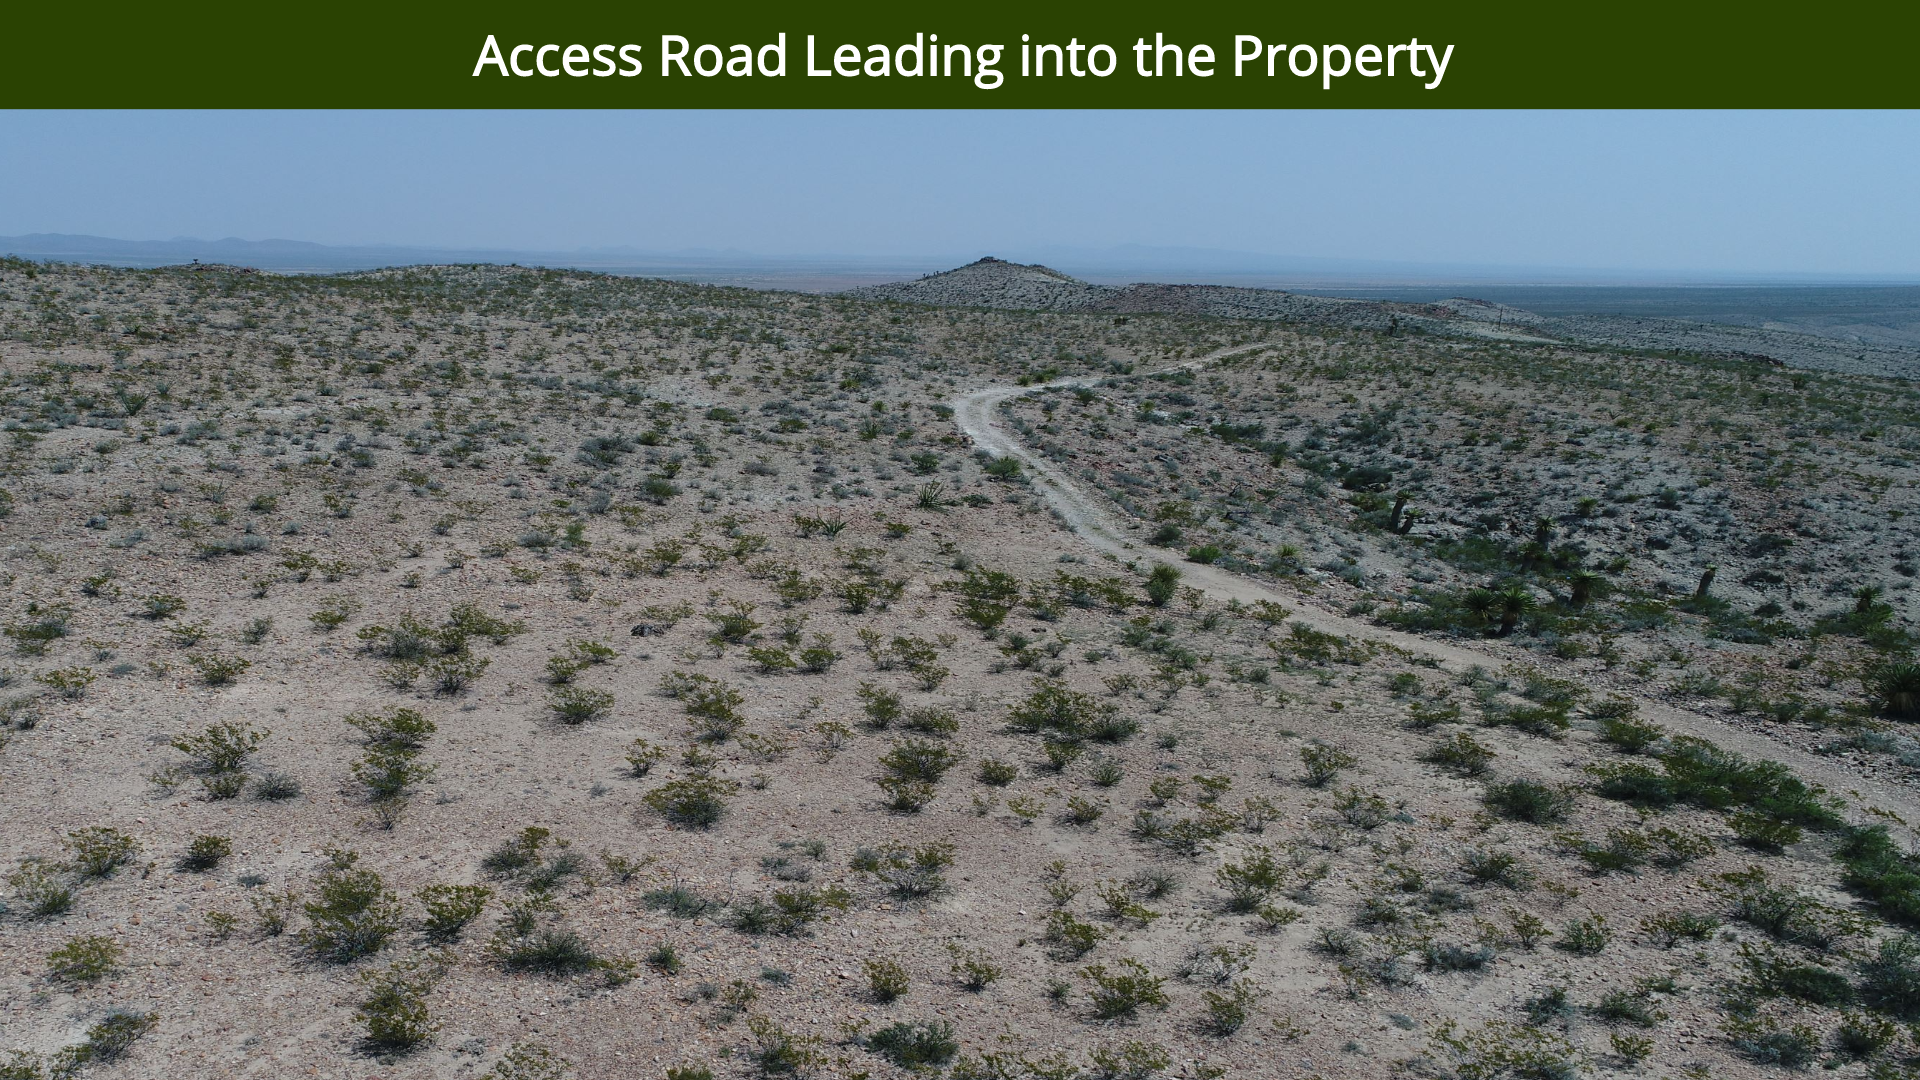 Access Road Leading into the Property